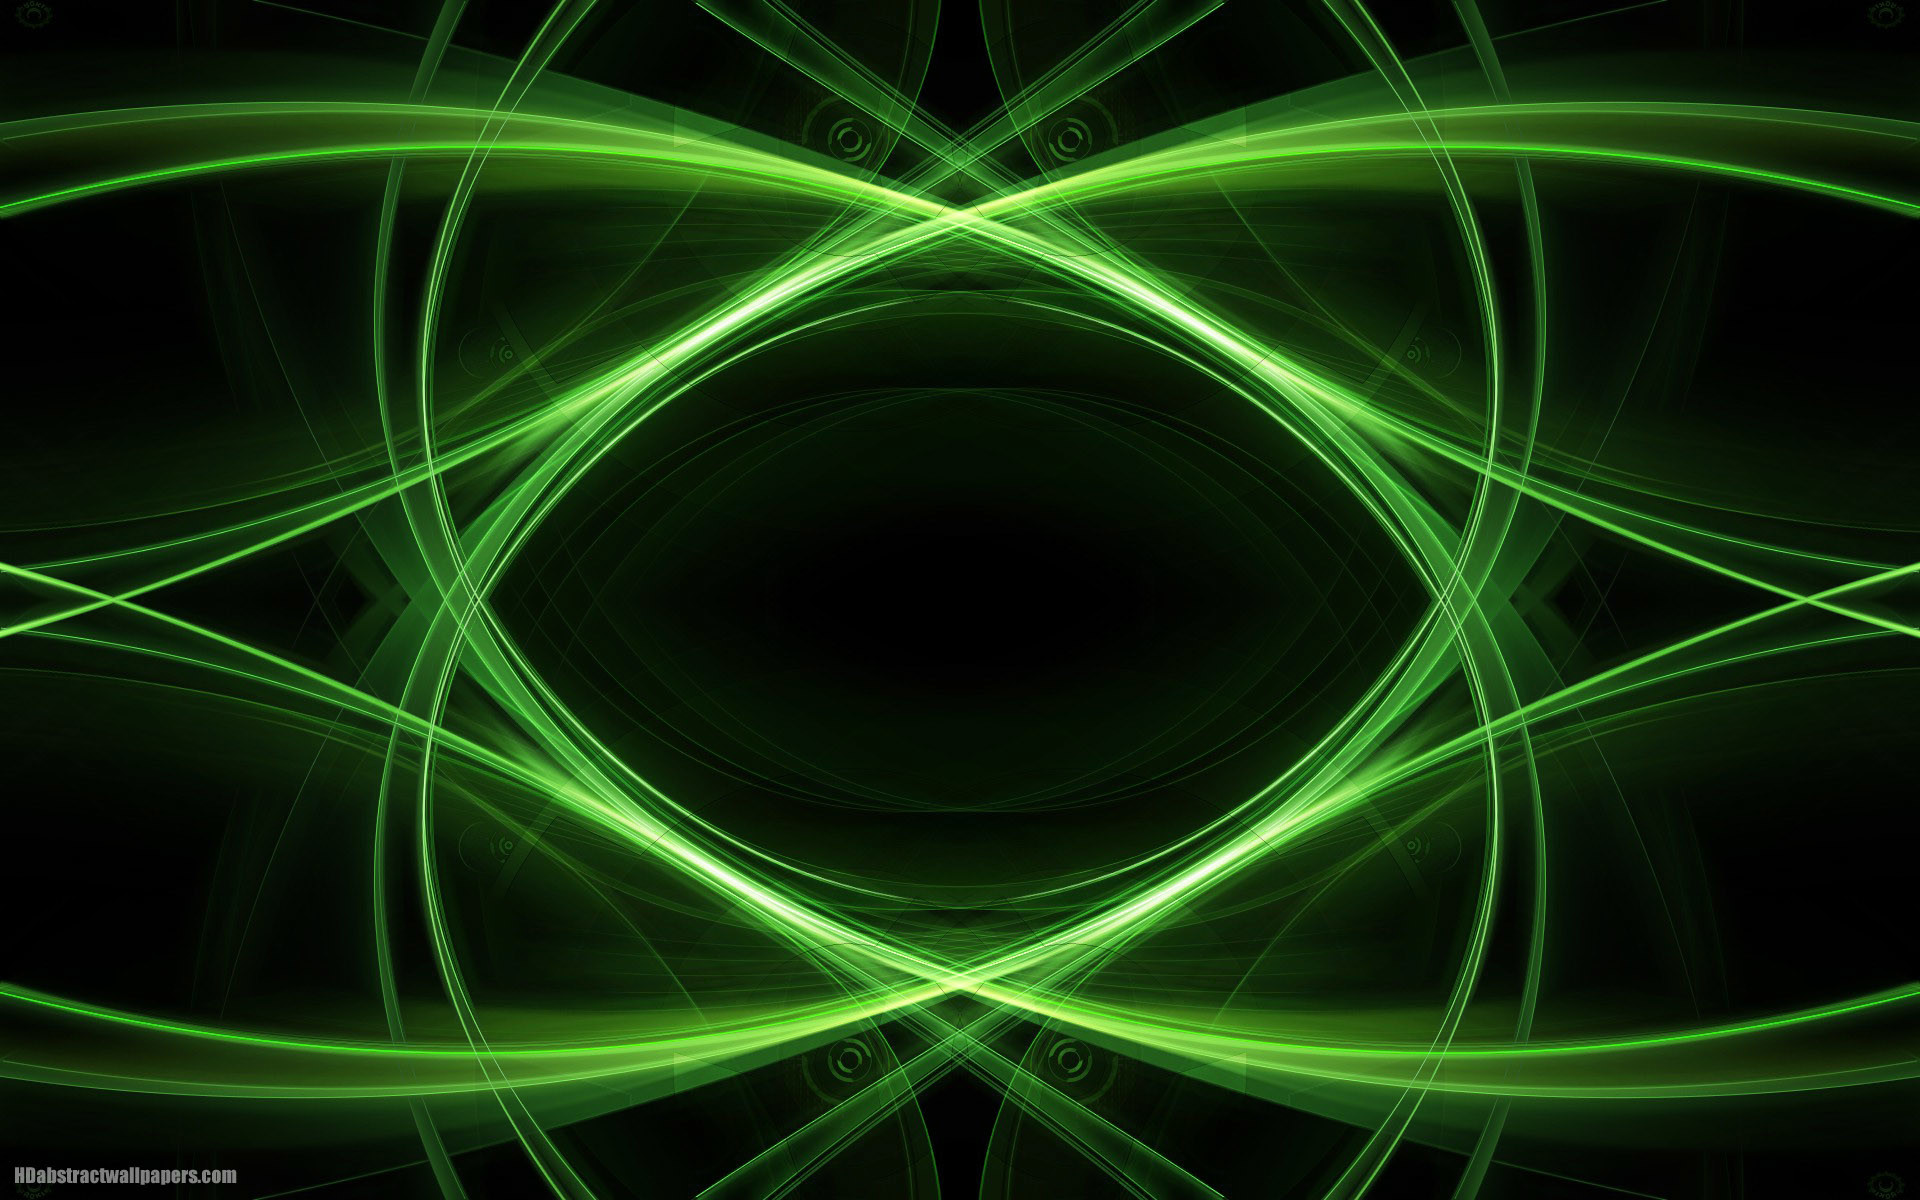 Black abstract wallpaper with green lines